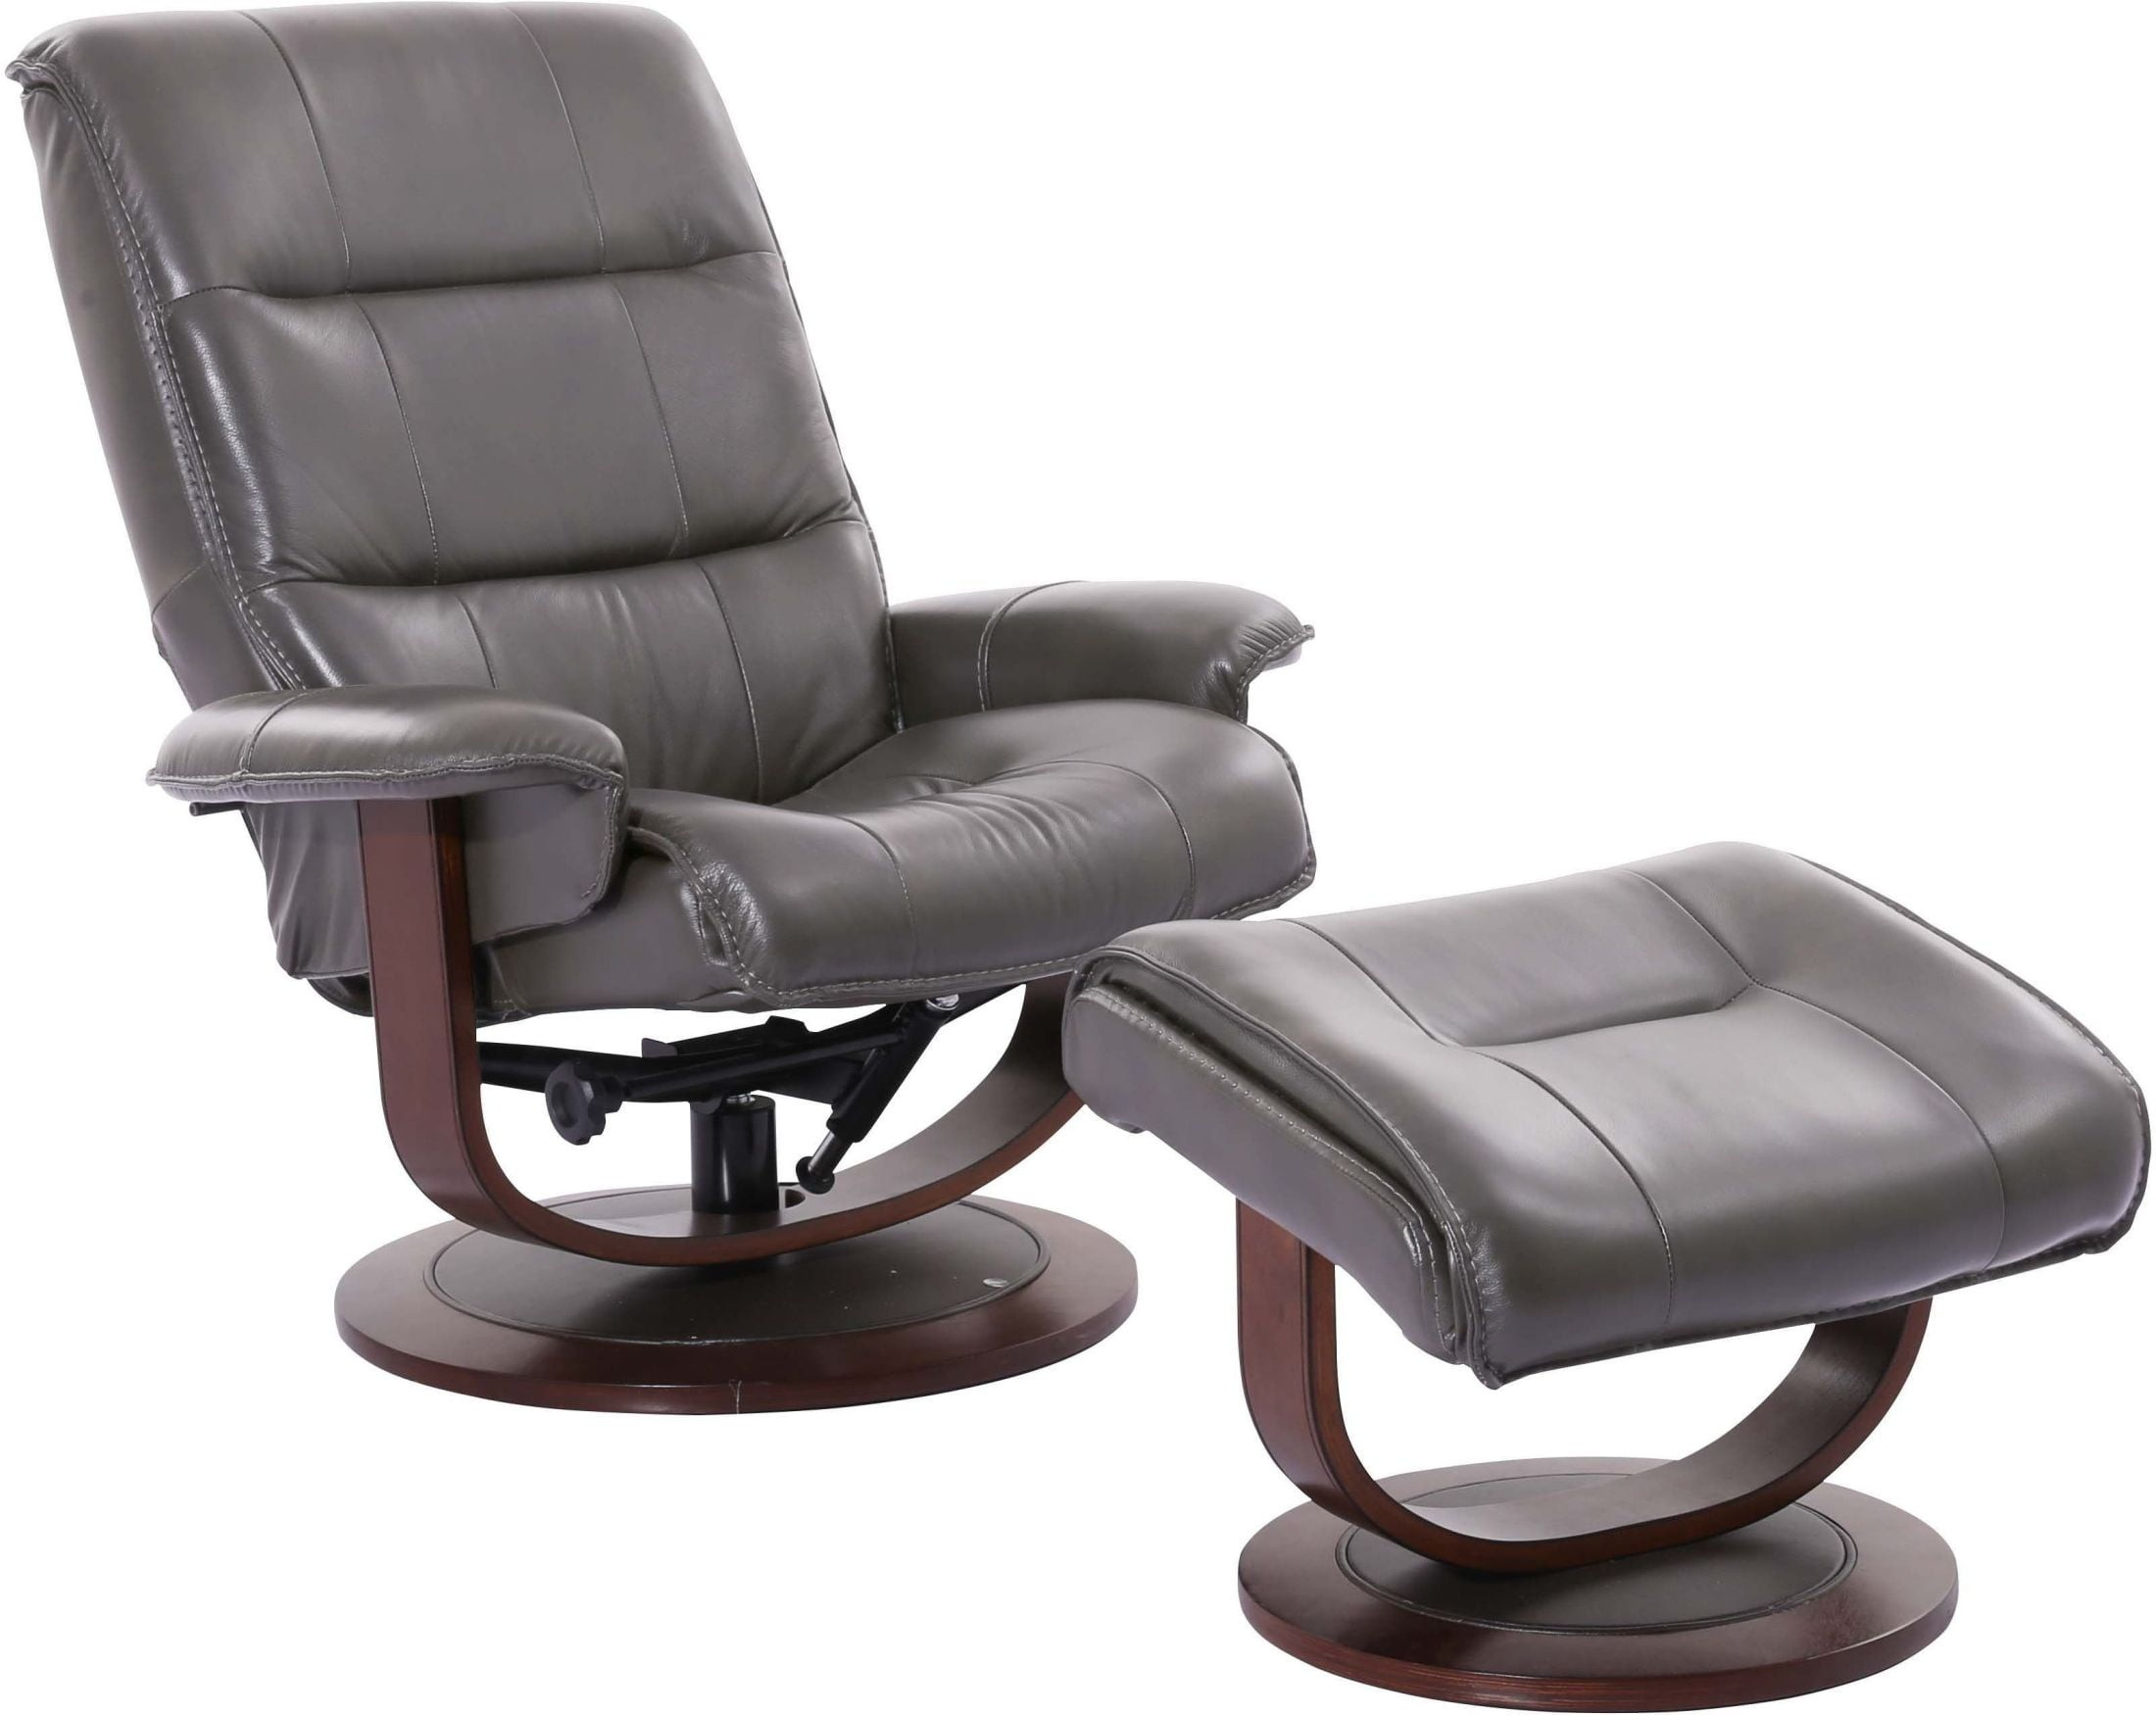 swivel ottoman l recliner motion mac leather and chairs set in oslo with htm cobblestone